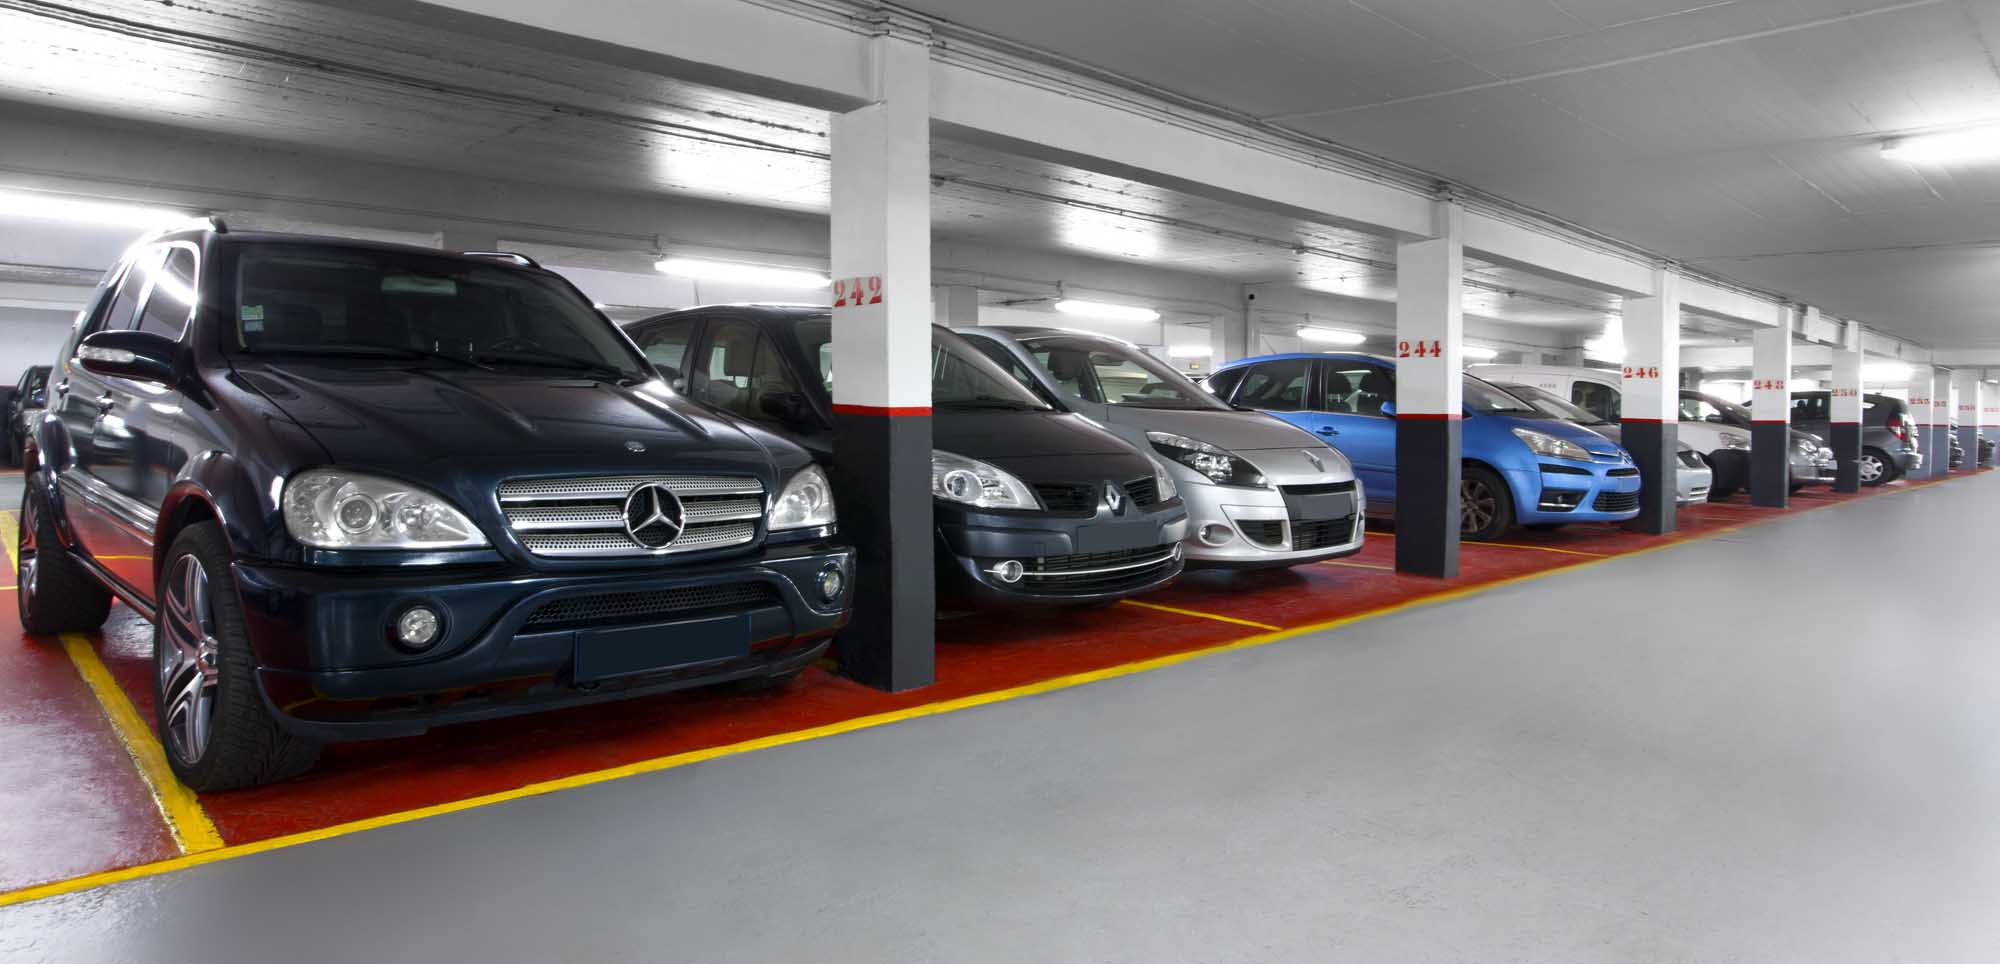 Location parking marseille : une solution efficiente et durable